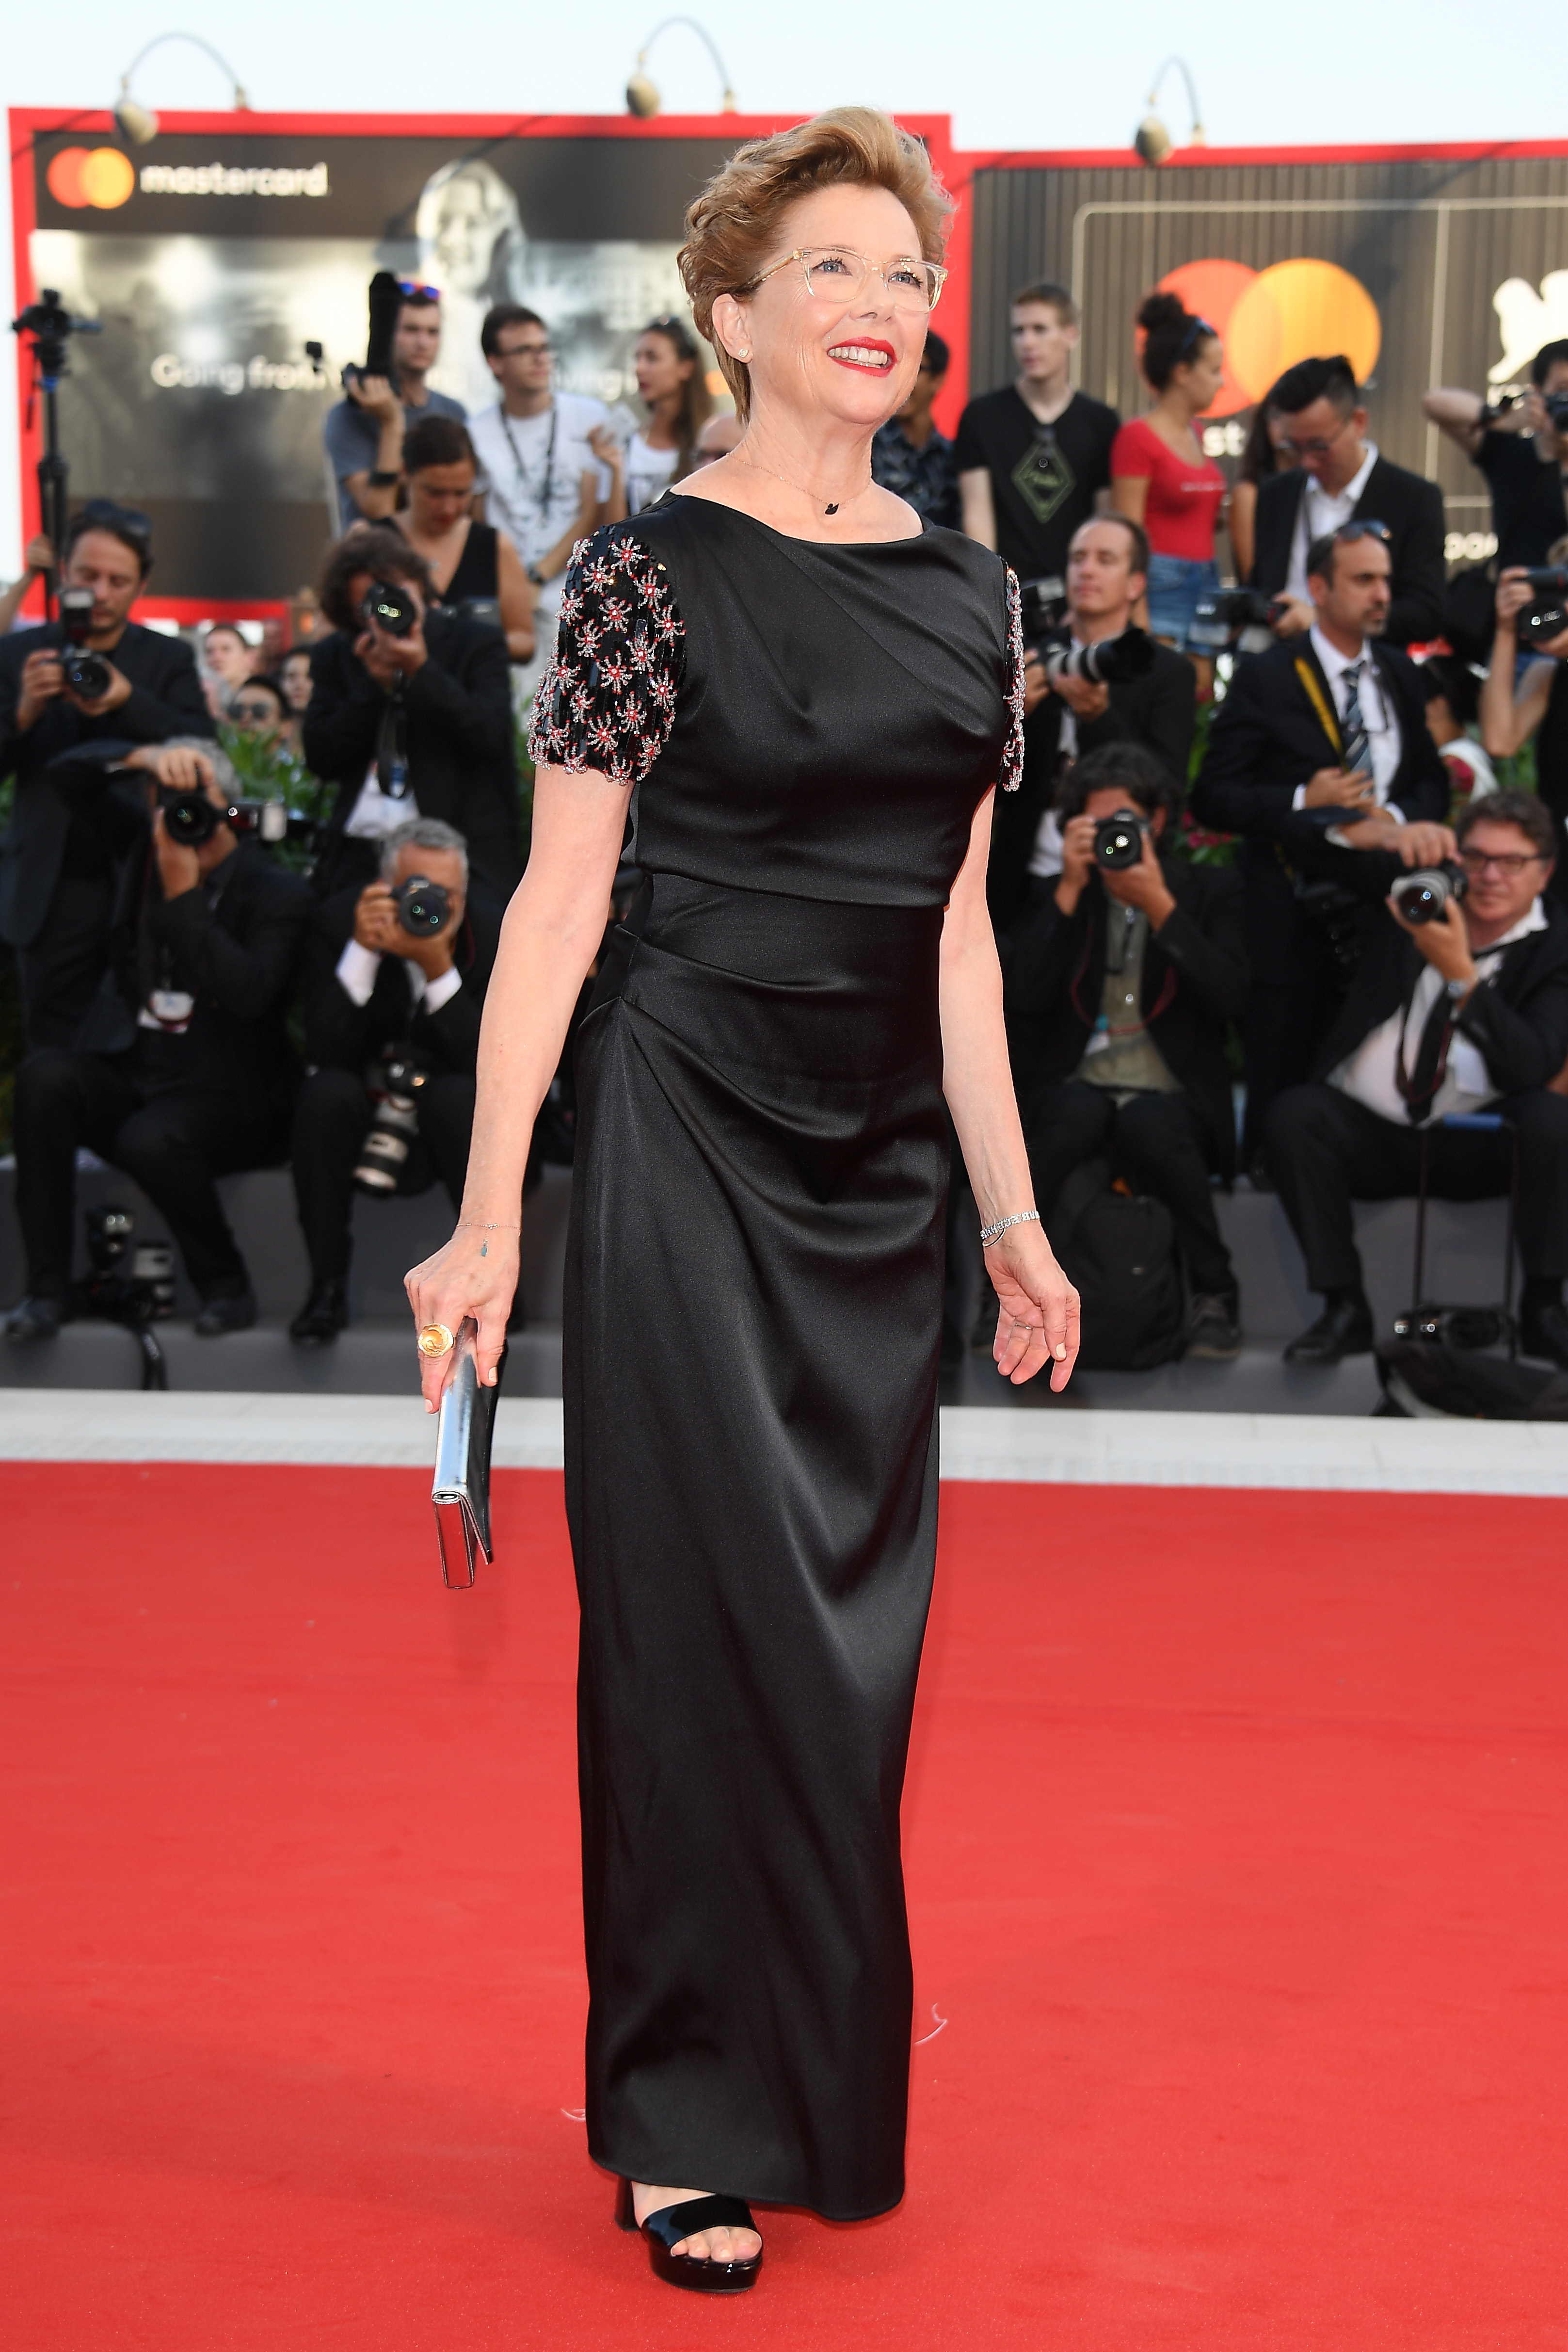 VENICE, ITALY - AUGUST 30:  Jury member Annette Bening  walks the red carpet ahead of the 'Downsizing' screening and Opening Ceremony during the 74th Venice Film Festival at Sala Grande on August 30, 2017 in Venice, Italy.  (Photo by Venturelli/WireImage)